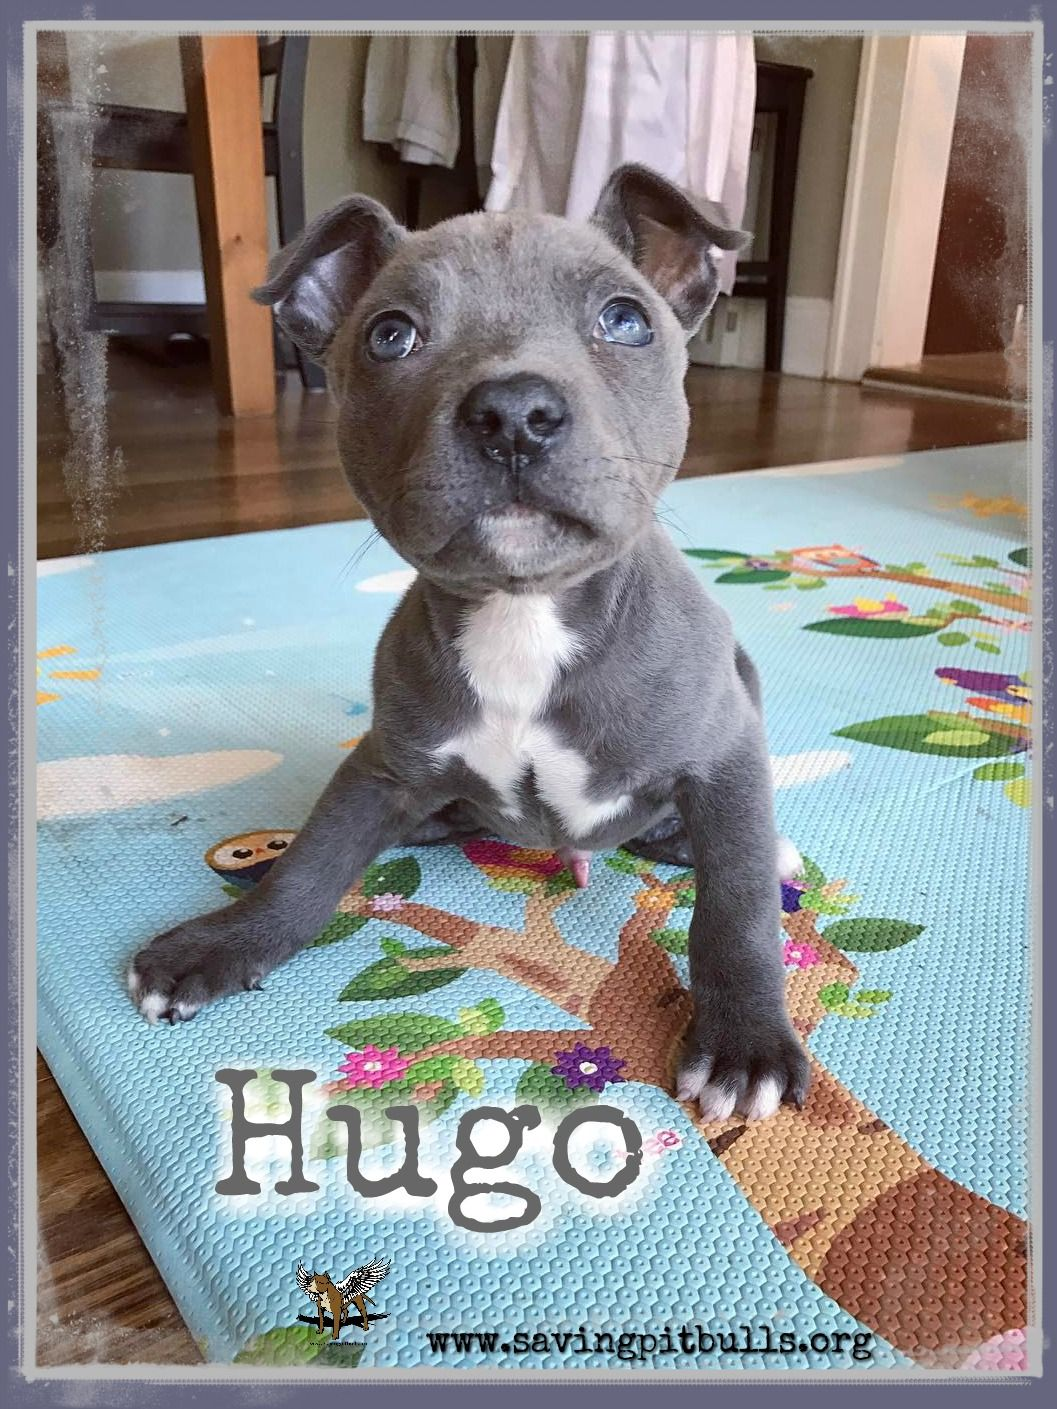 Gohugogo Hugo Is Our Little Swimmer Puppy He Will Walk